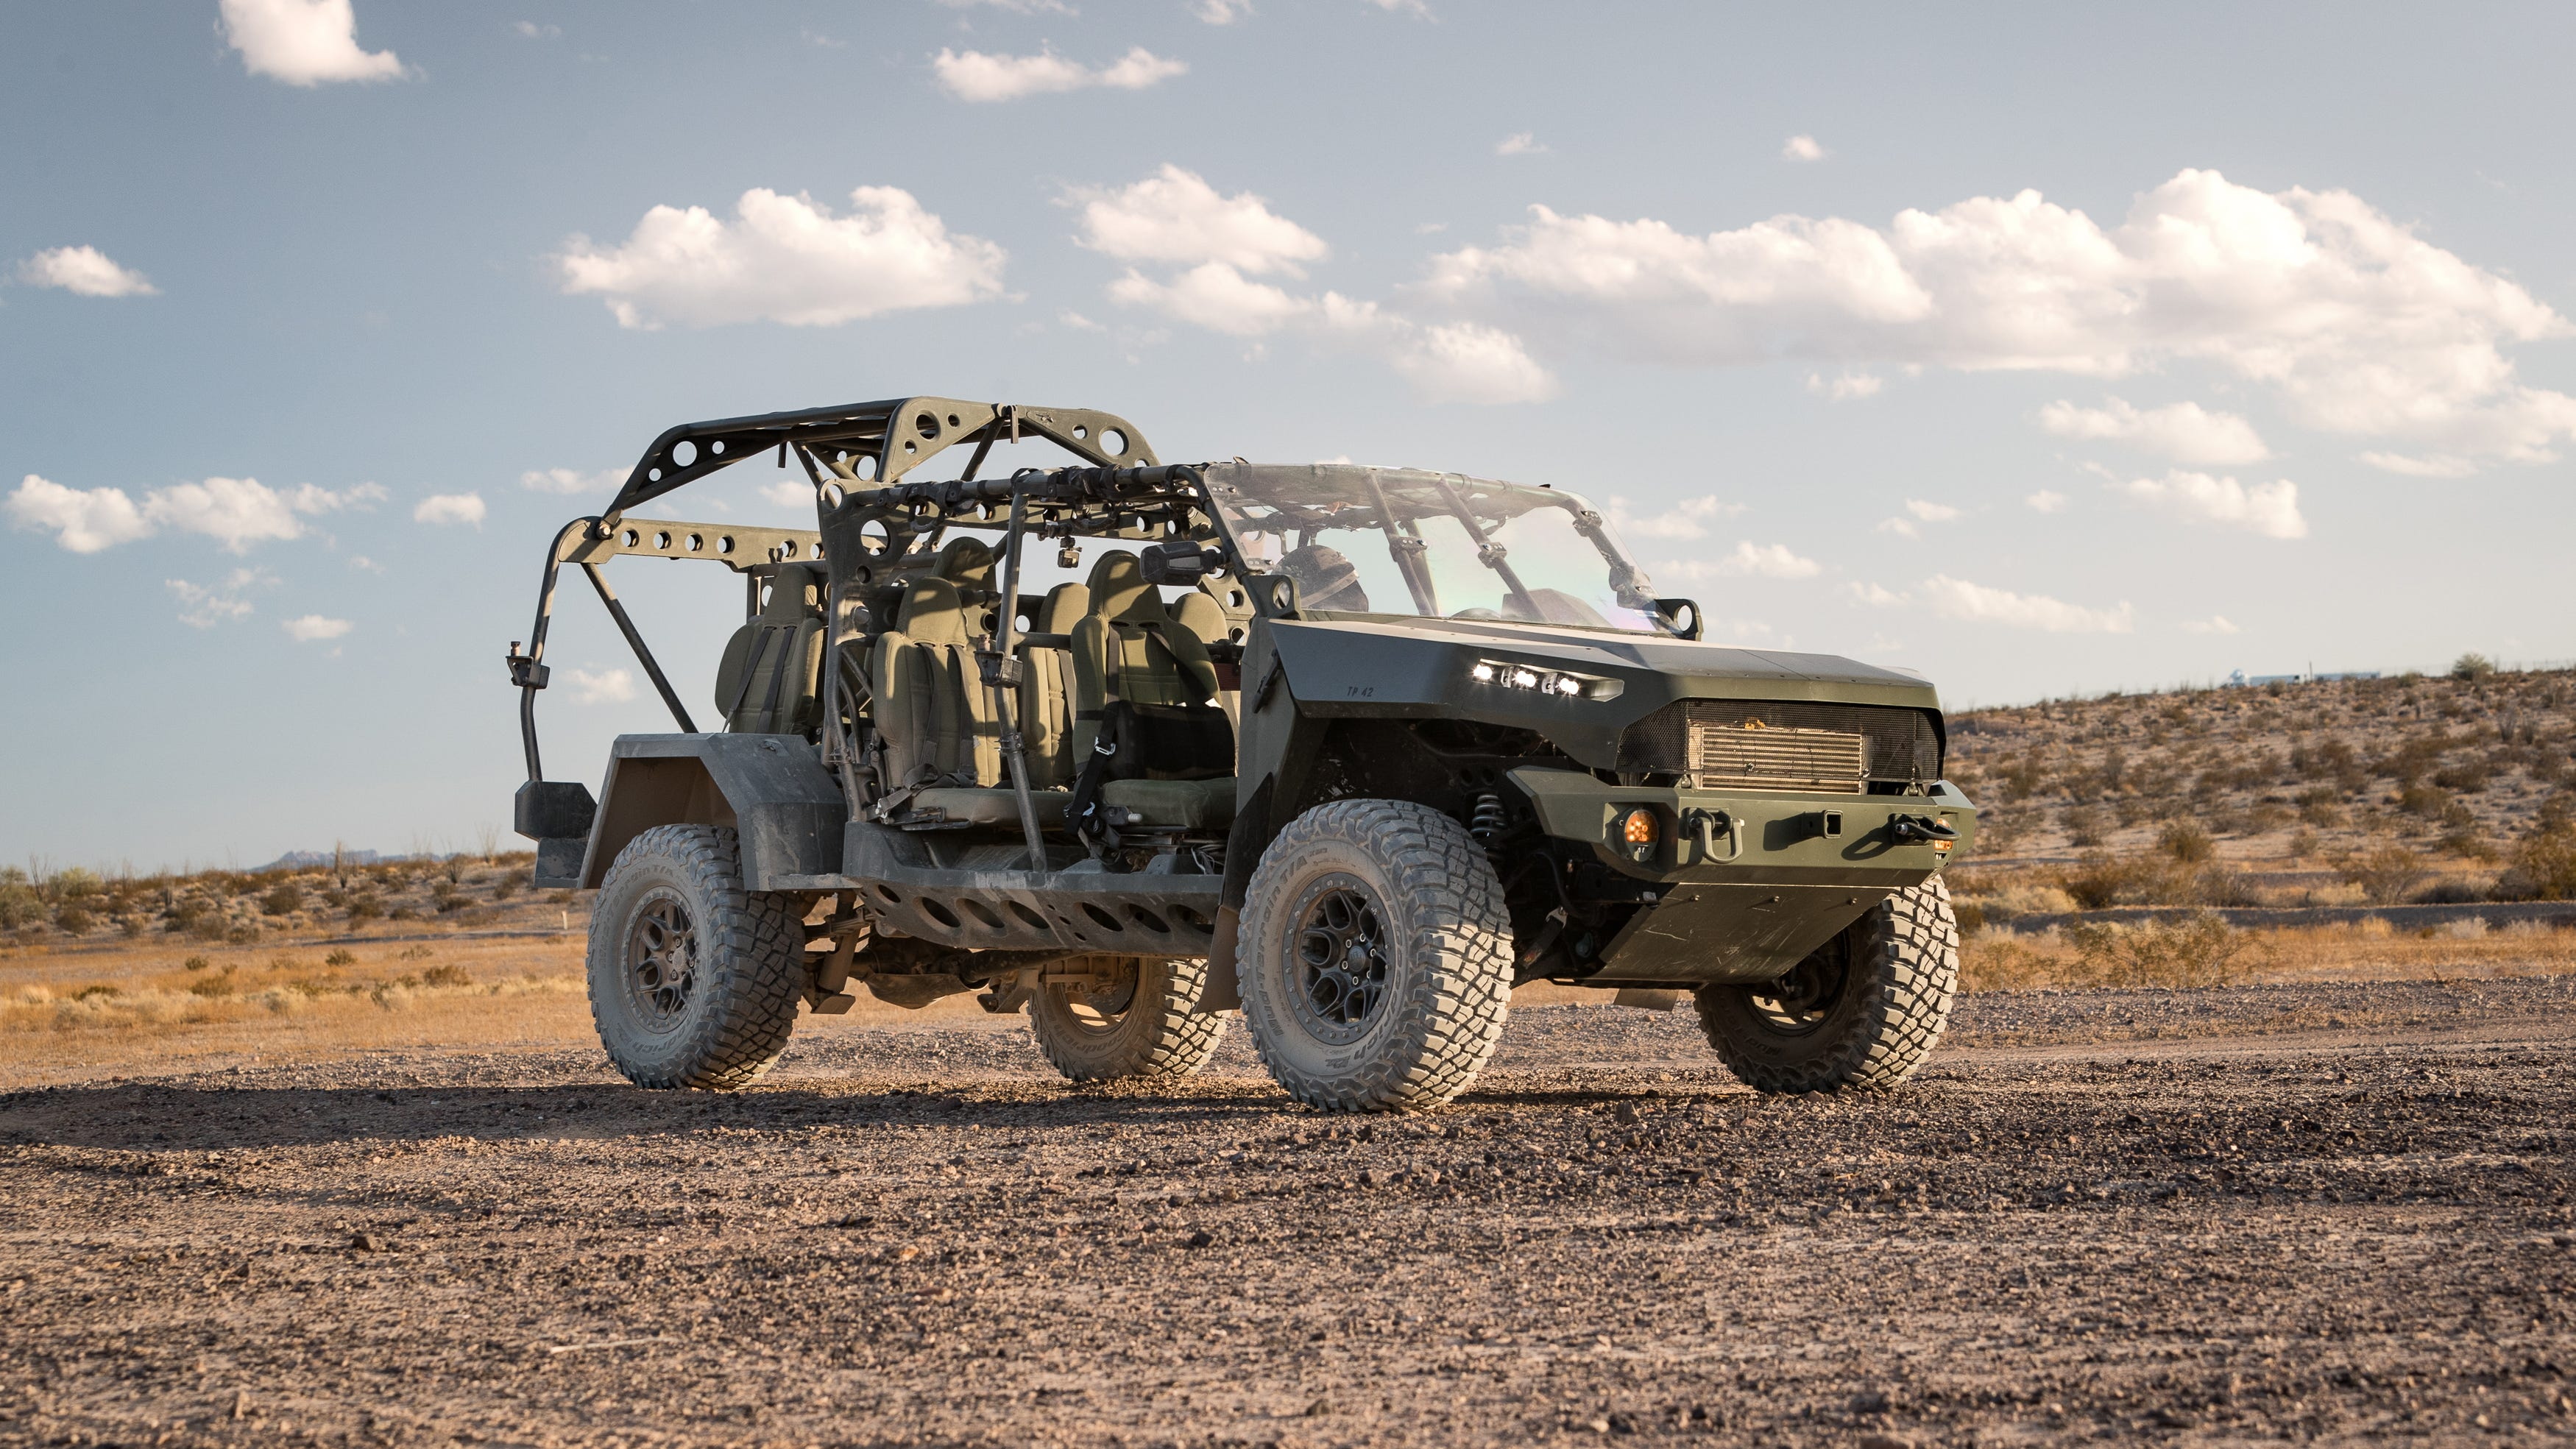 Off Road Warrior Gm Arm To Build Army Vehicle Based On Chevy Colorado